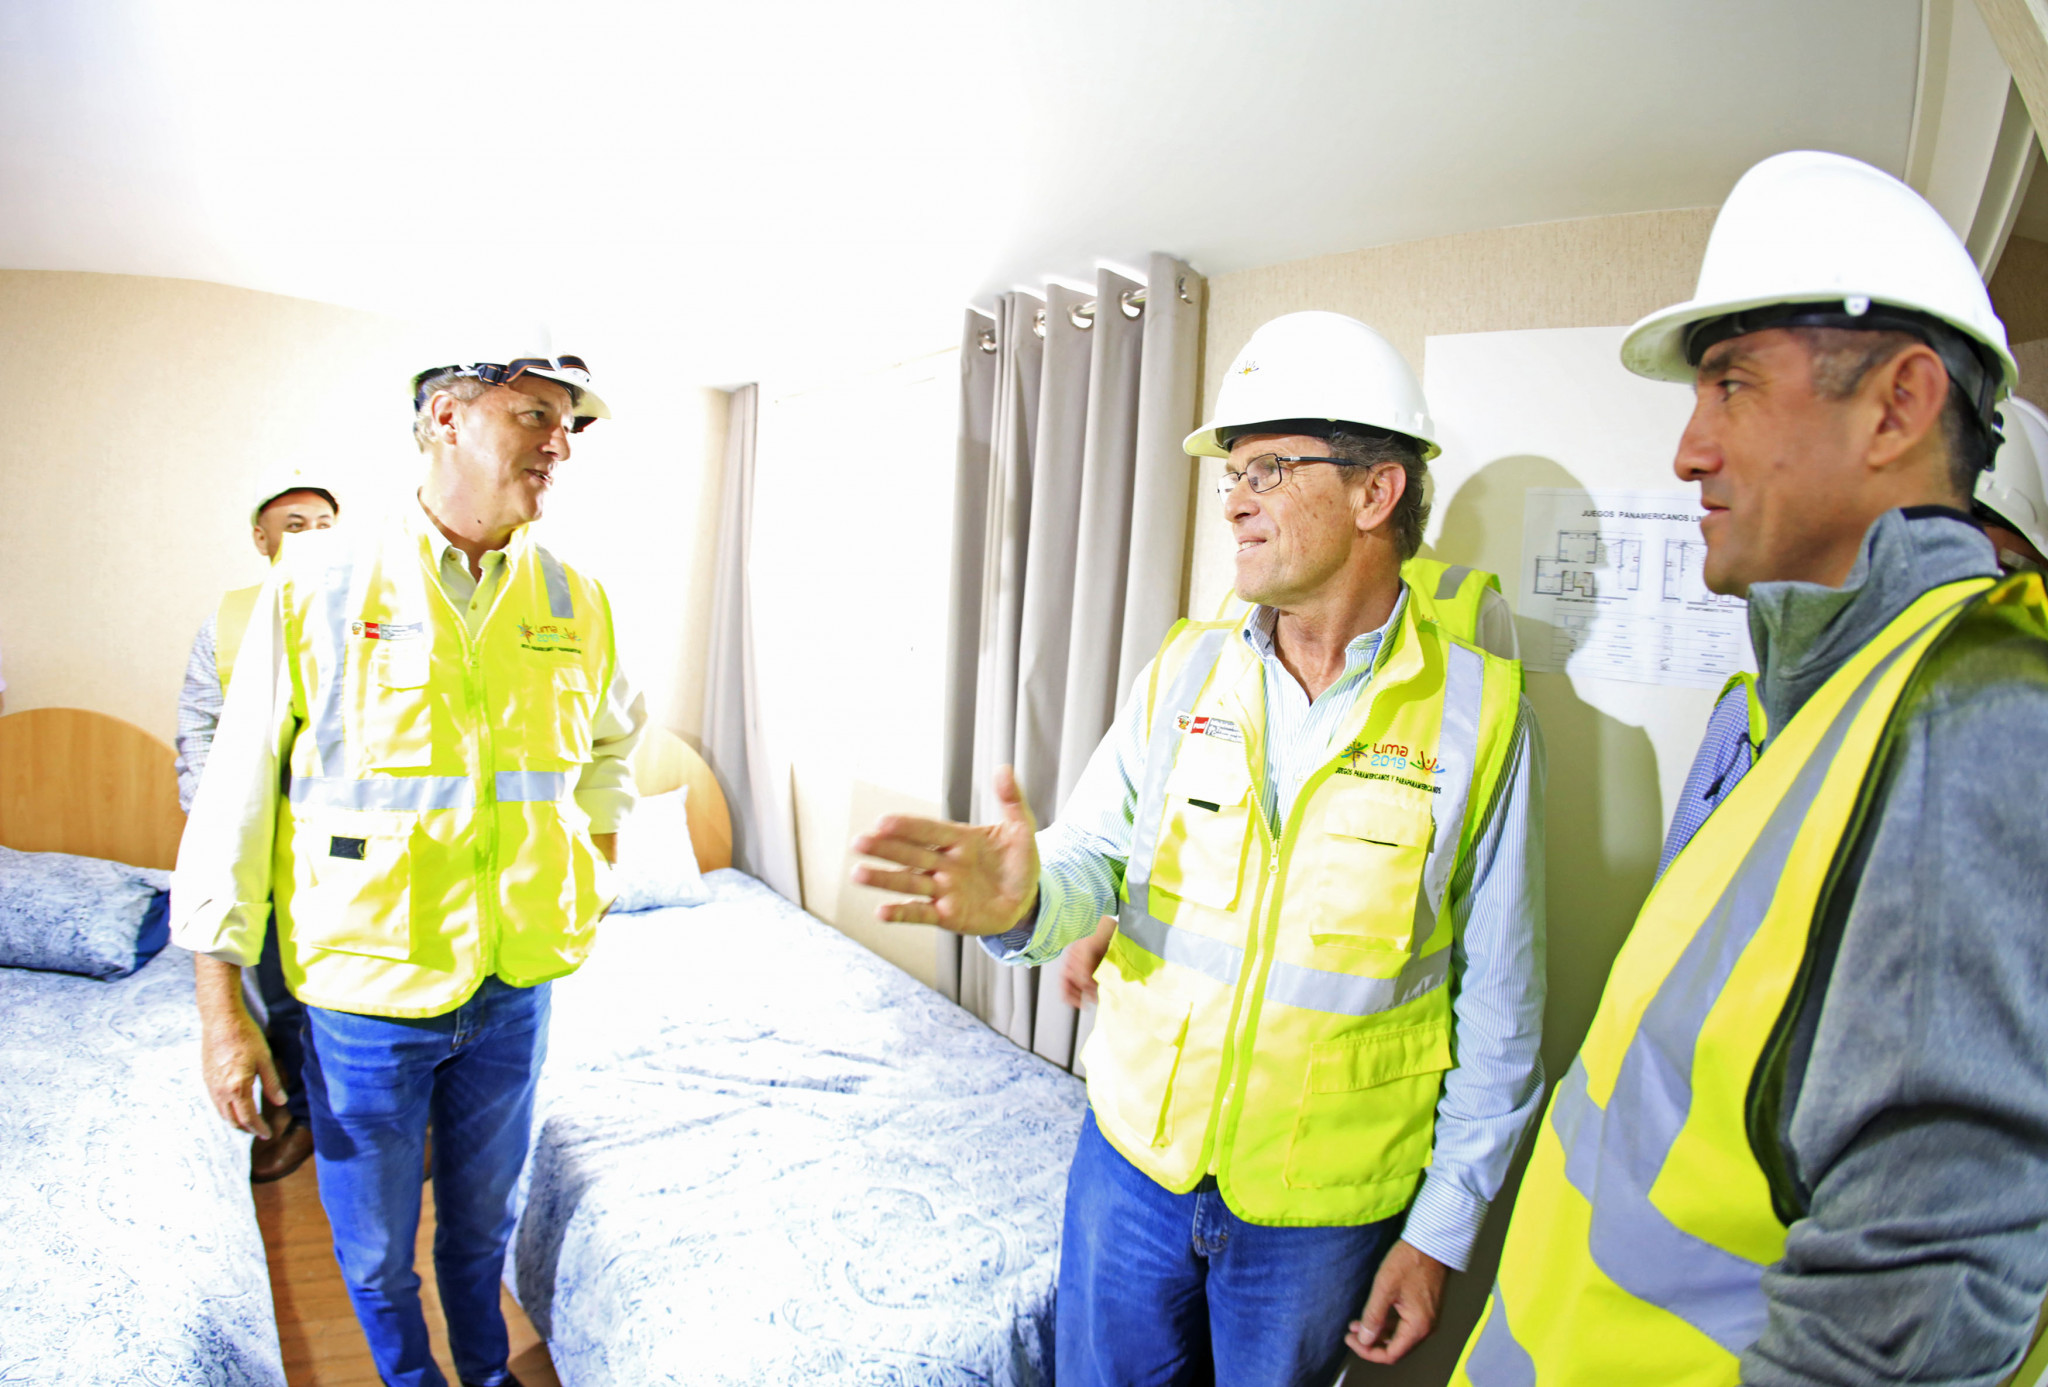 As well as touring the venues, the Mayor-elect of Lima  Jorge Muñoz Wells  also visited the Athletes' Village being built for next year's Pan American and Parapan American Games ©Lima 2019